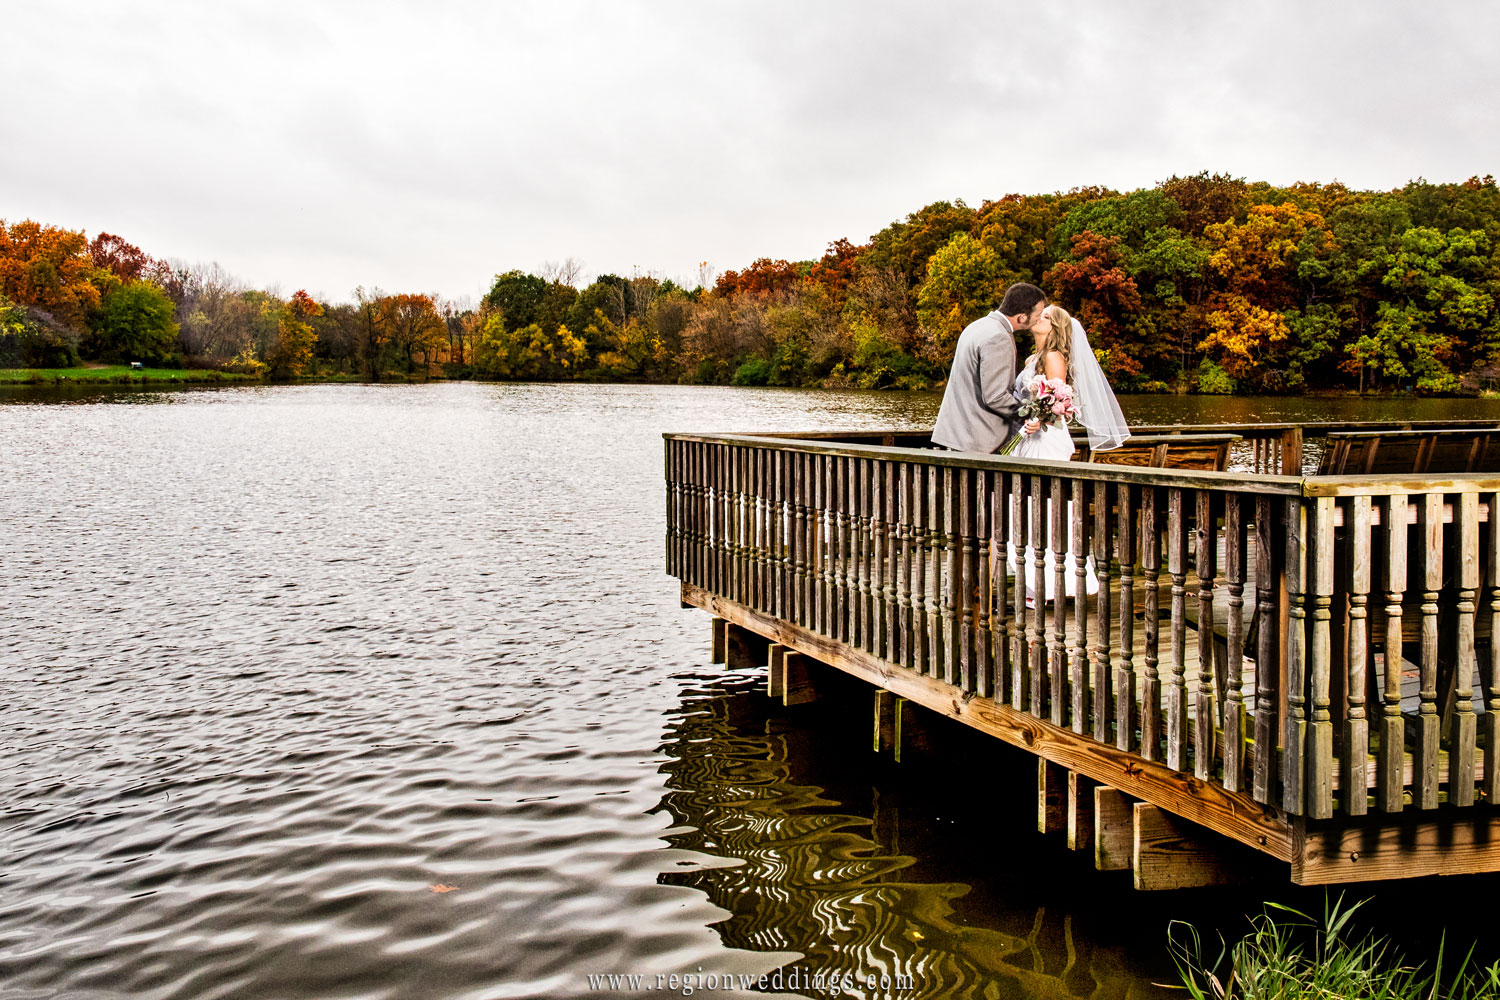 Fall colors pop in the background as the bride and groom kiss on the pier.